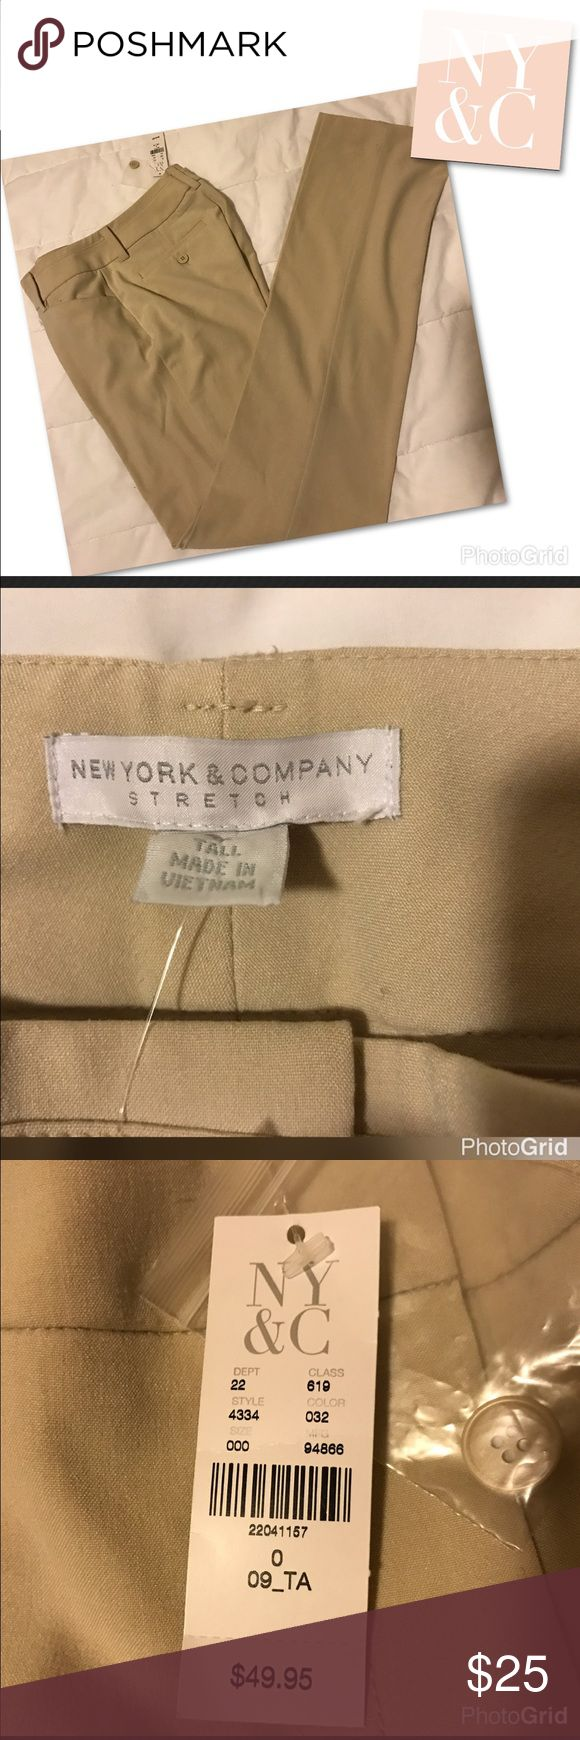 """Women's NEWYORK&COMPANY"""" trousers pants Brand New with tags Women's New York & Company stretch and tall trouser pants made with64%polyester 32%Rayon and 4%spandex. Approximately measurements laying flat Inseam:34"""" Across waist:14""""  Across at hem:8"""". Waist to bottom hem: 43"""" Pet and smoke free home BRAND NEW WITH TAGS New York & Company Pants Trousers"""